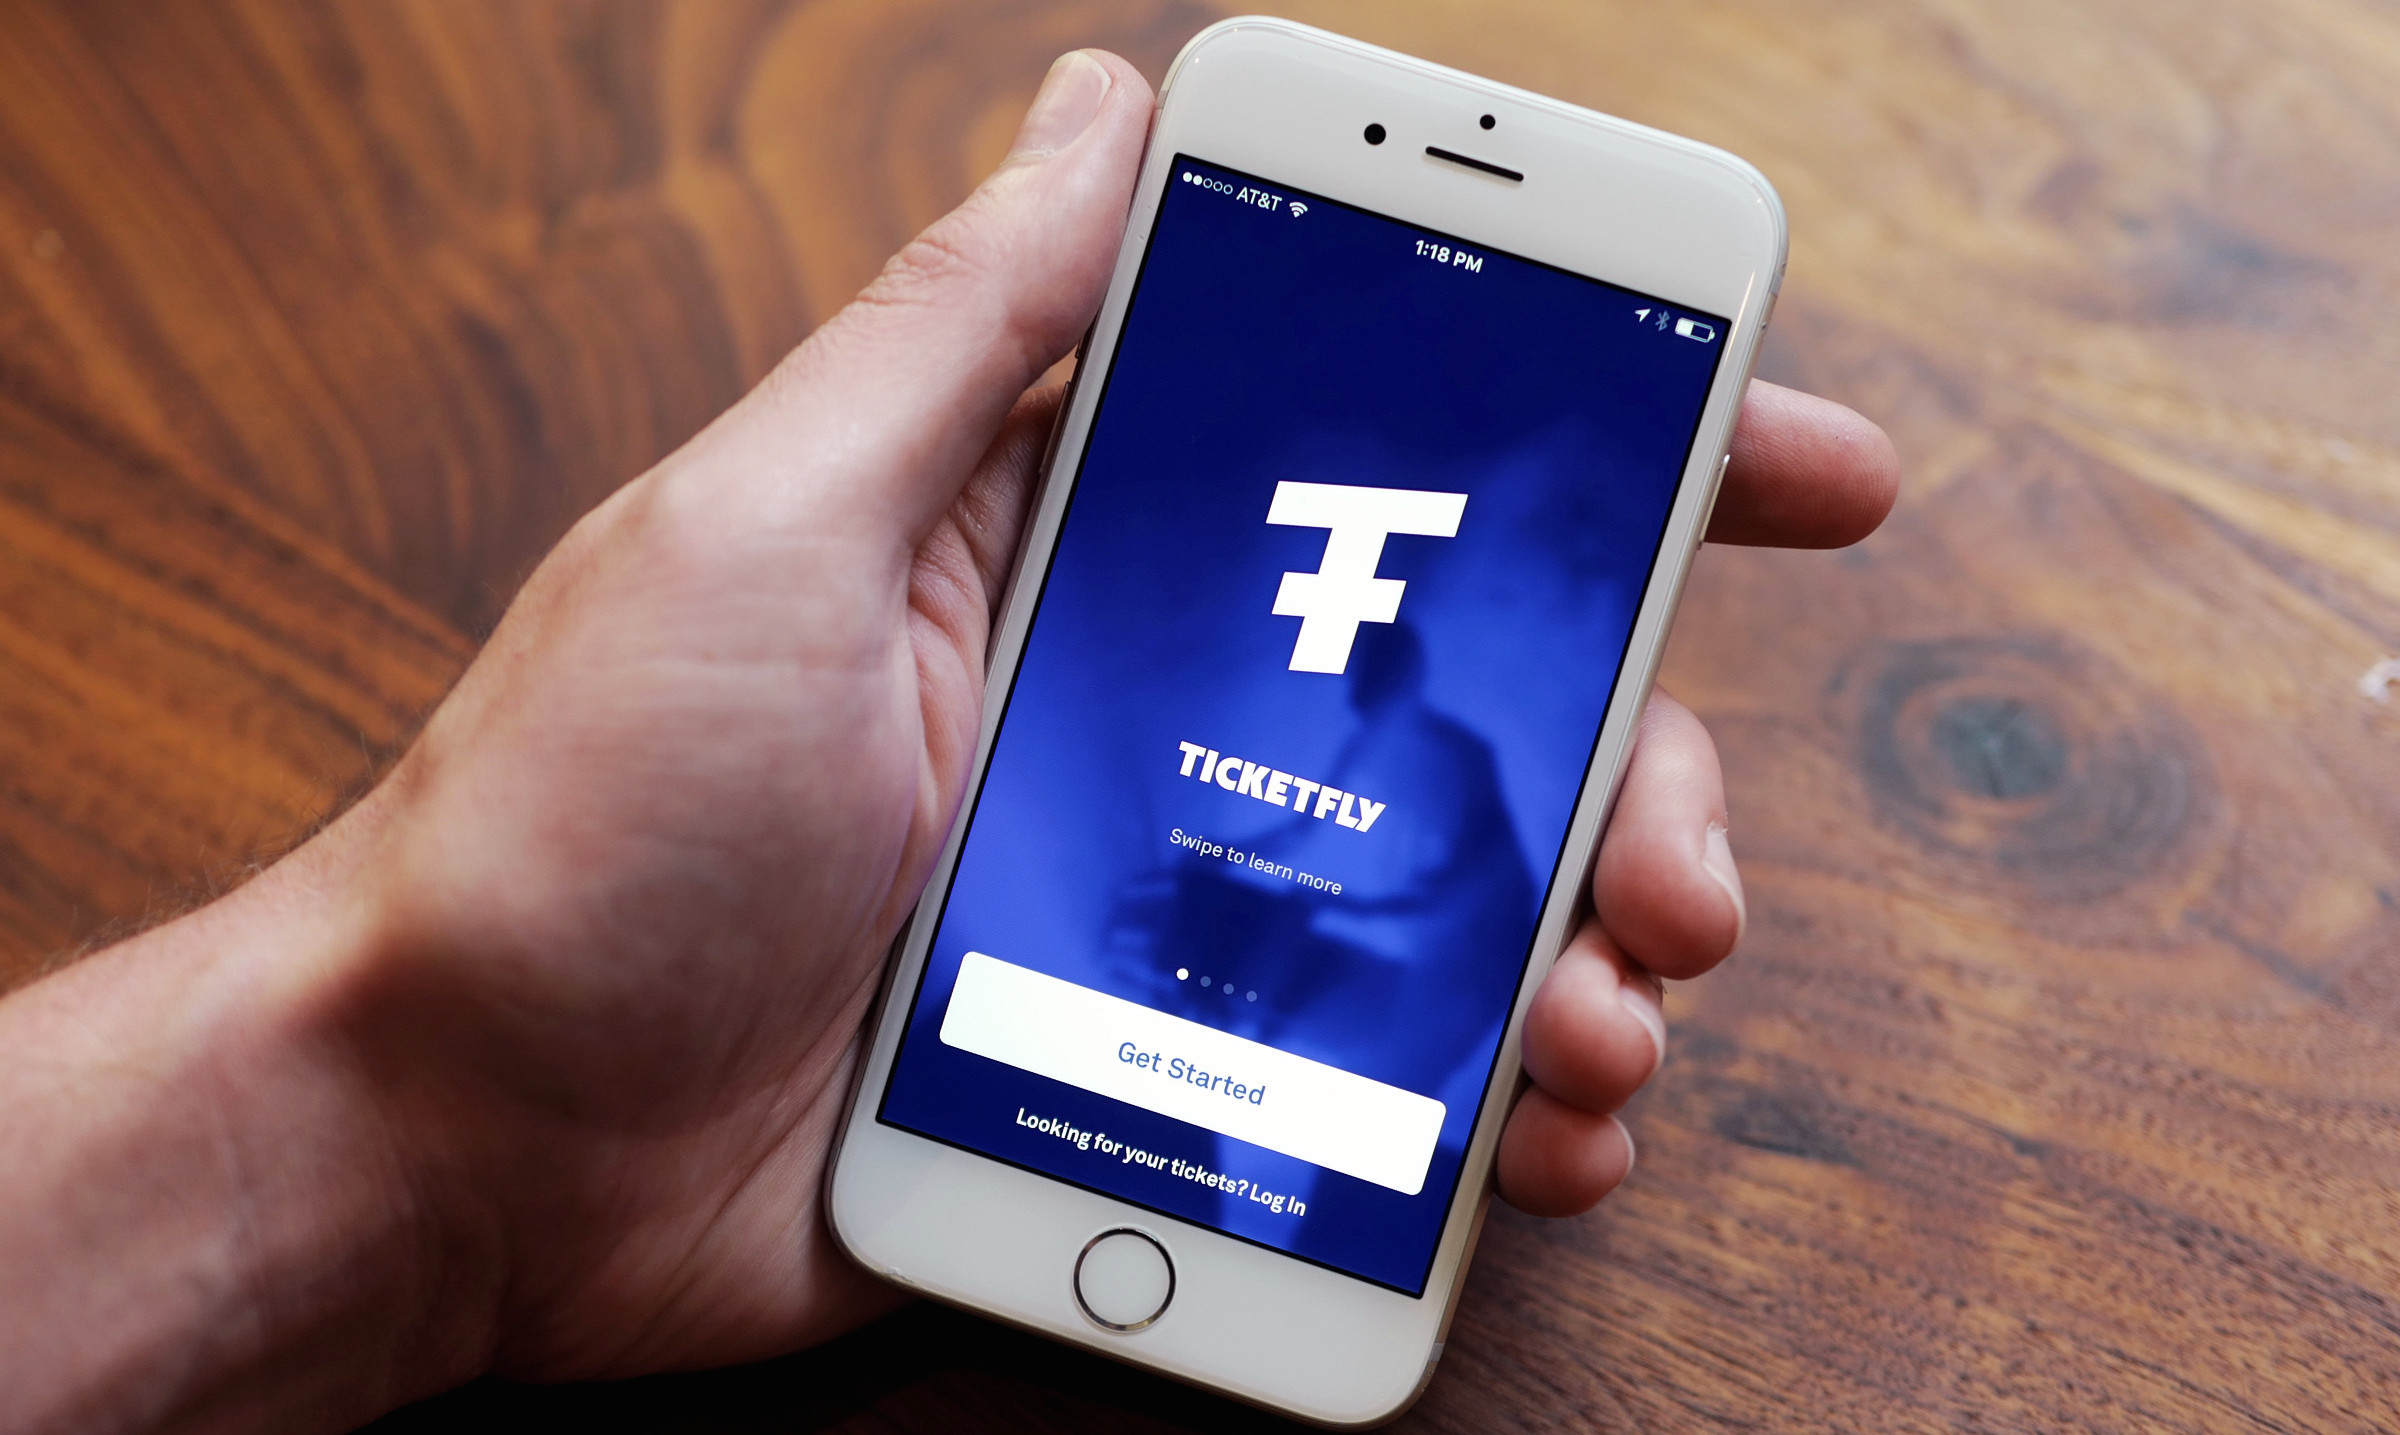 Ticketfly takes websites offline after hack and ransom demand